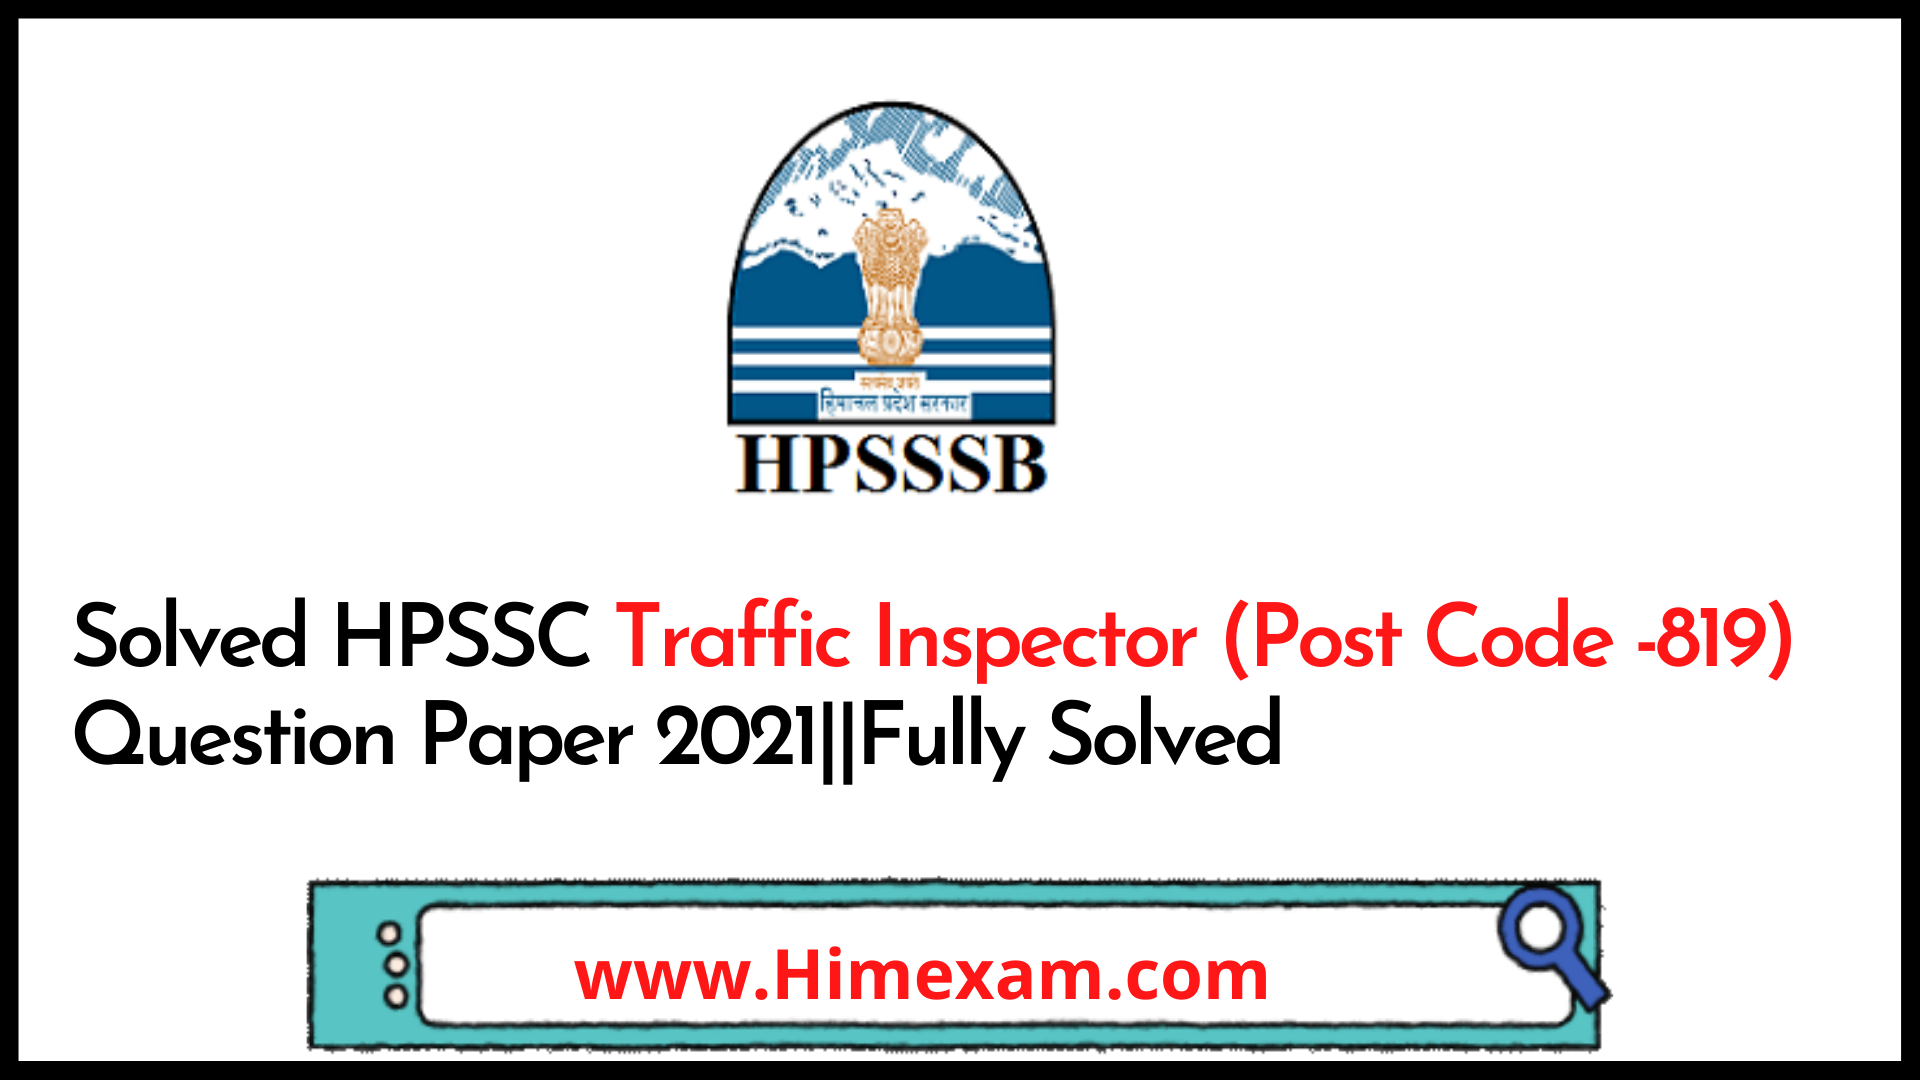 Solved HPSSC Traffic Inspector (Post Code -819) Question Paper 2021